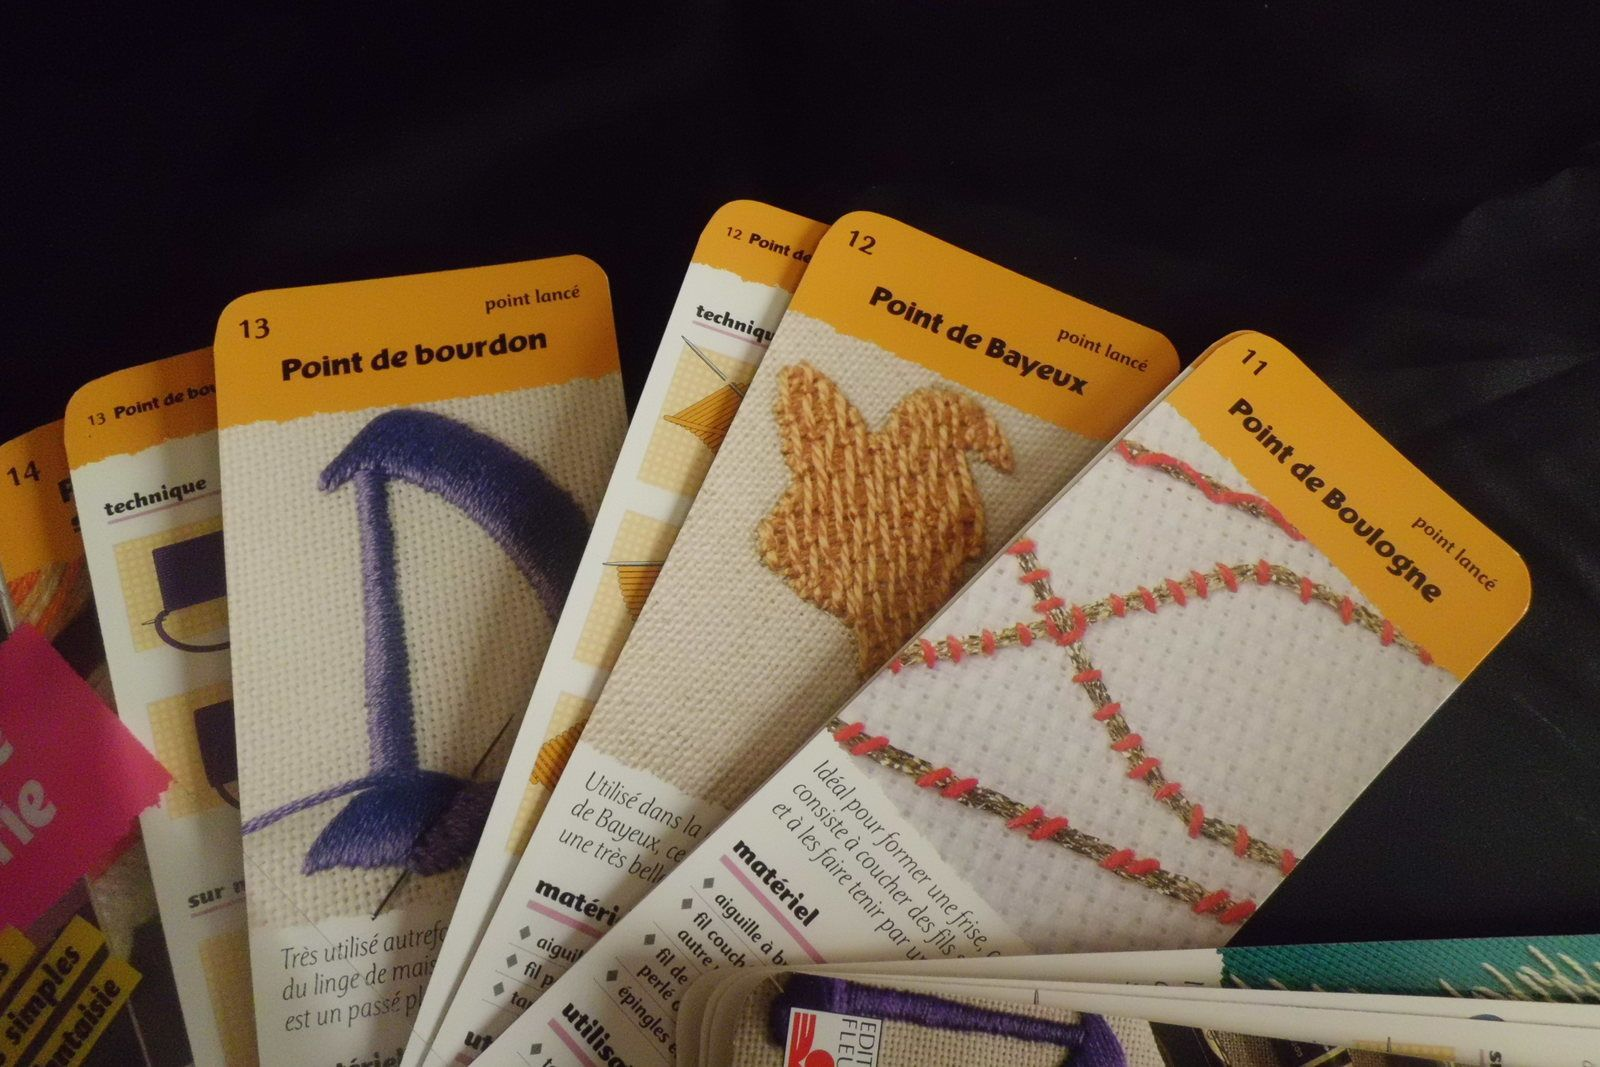 Petits Livres Utiles: Points de broderie / Little Usefull Books: Points de broderie